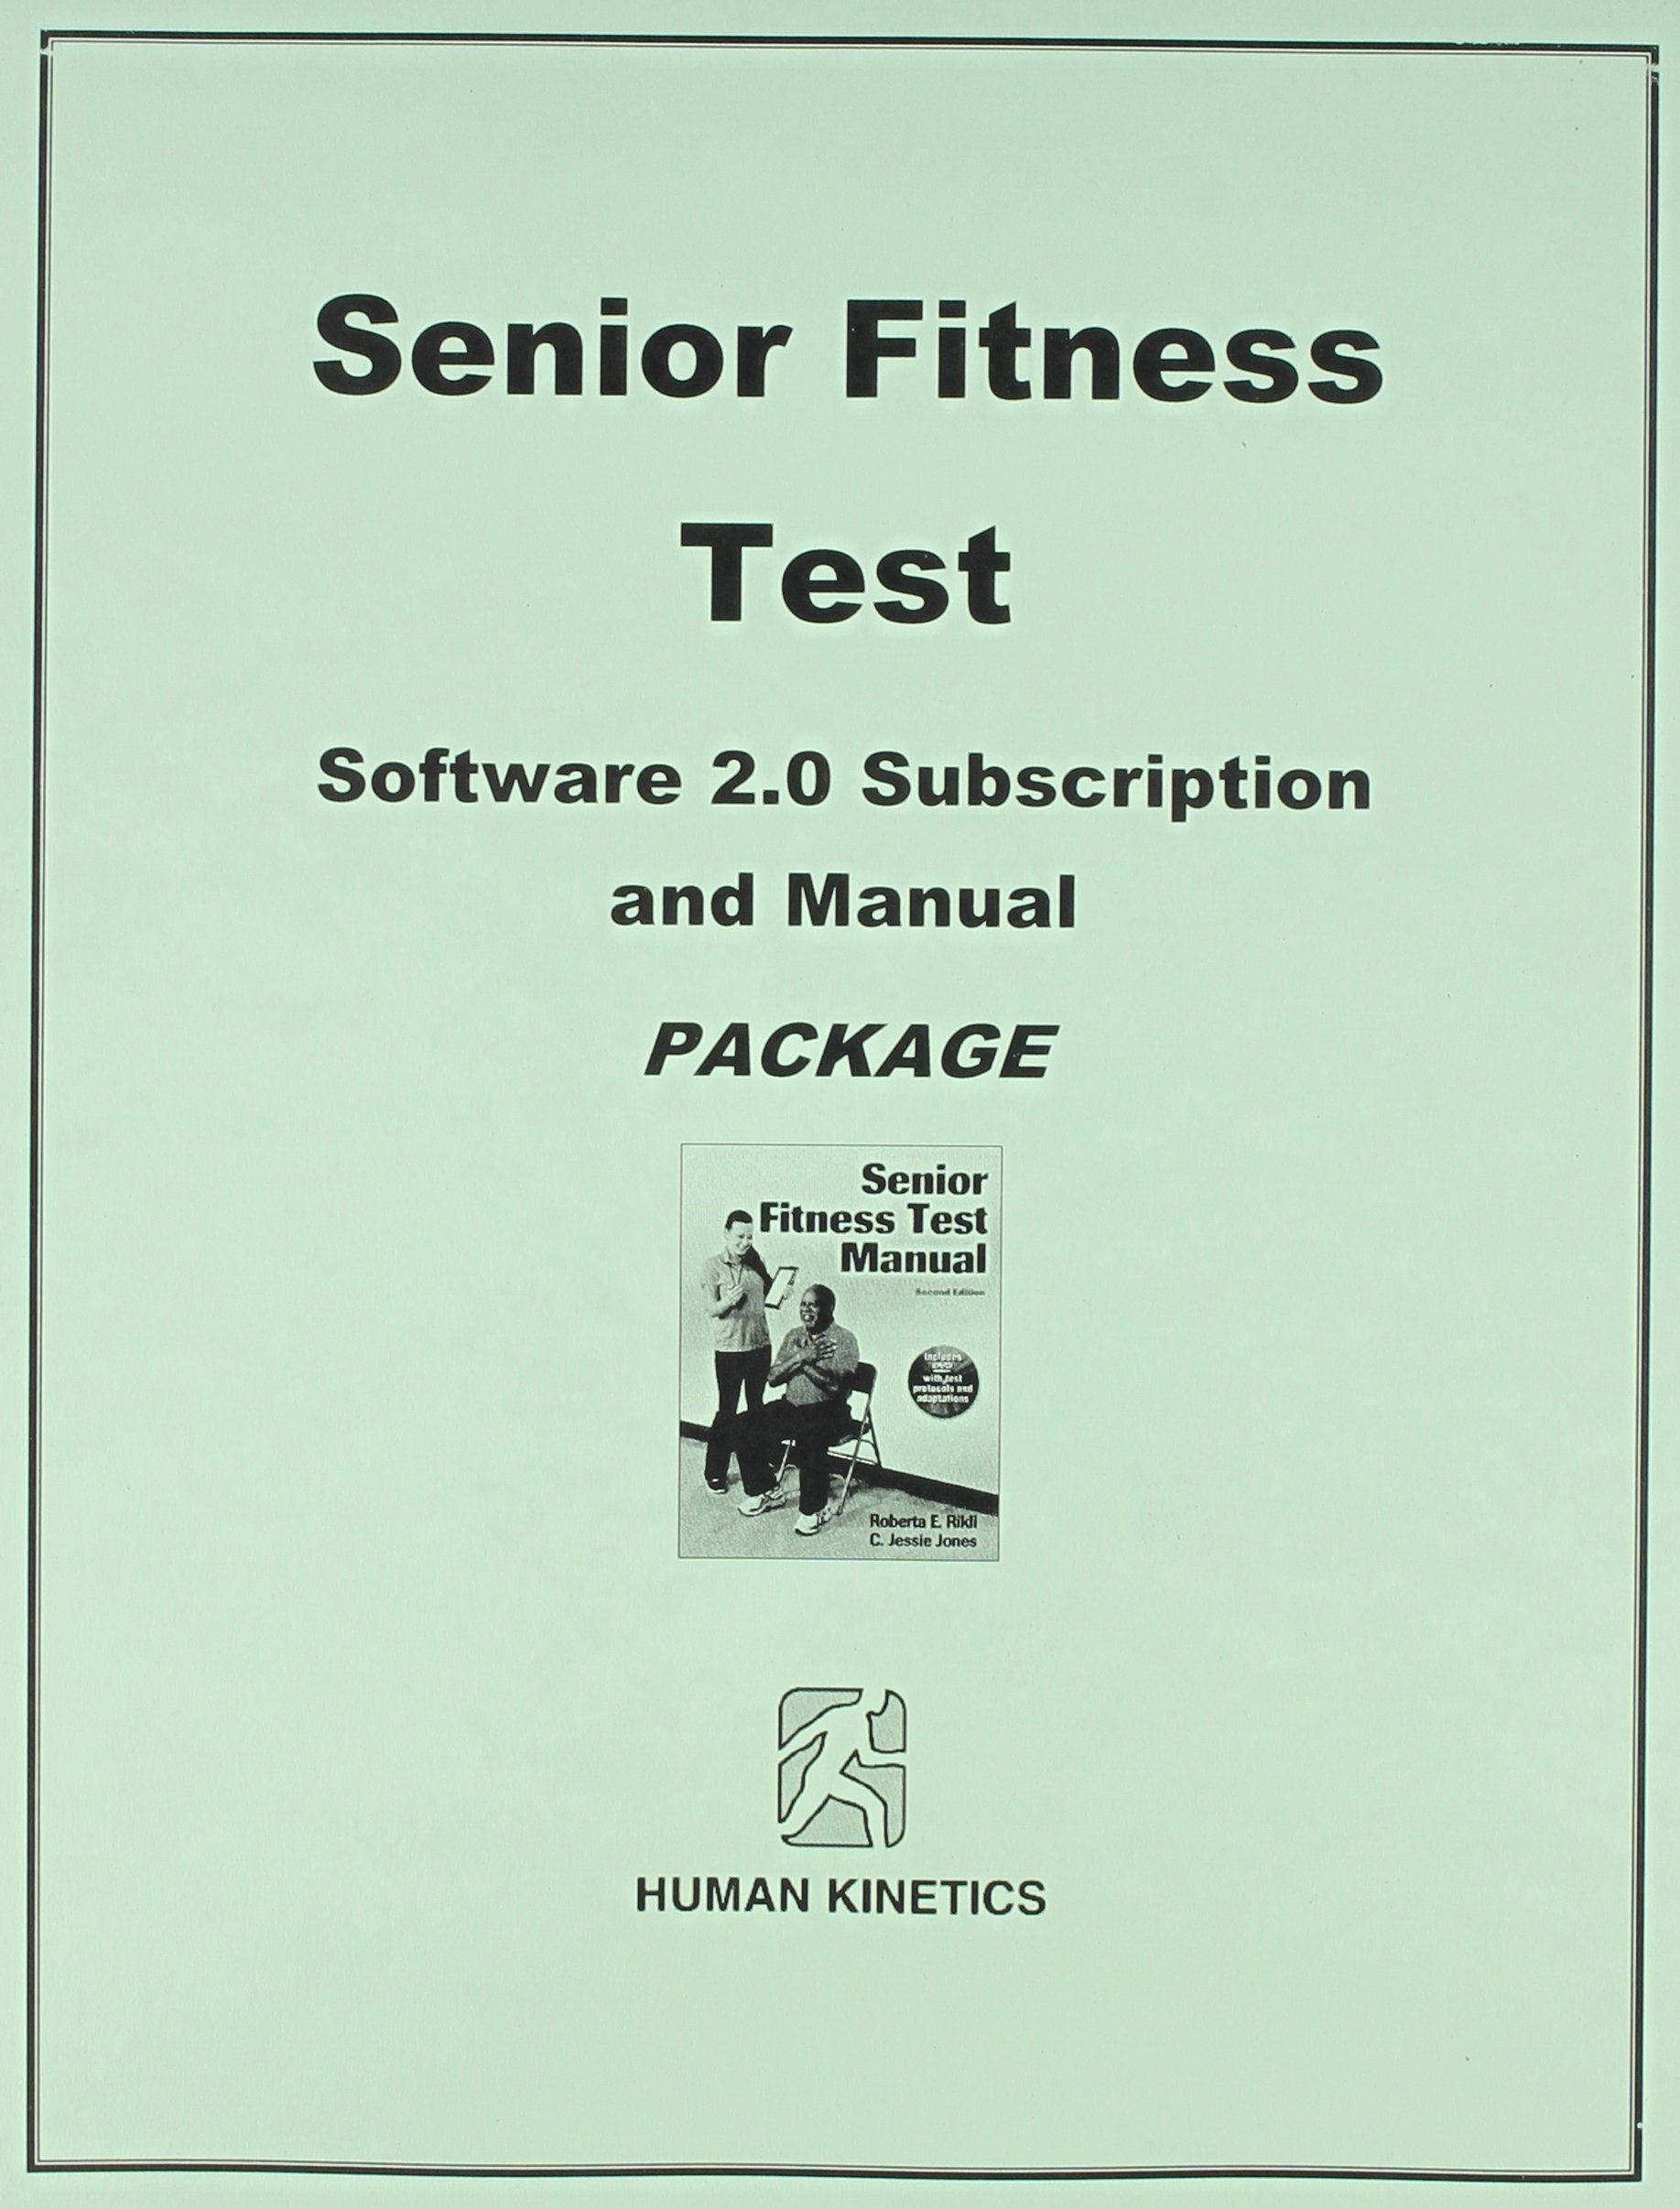 Buy Senior Fitness Test Software 2 0 and Manual Package Subscription